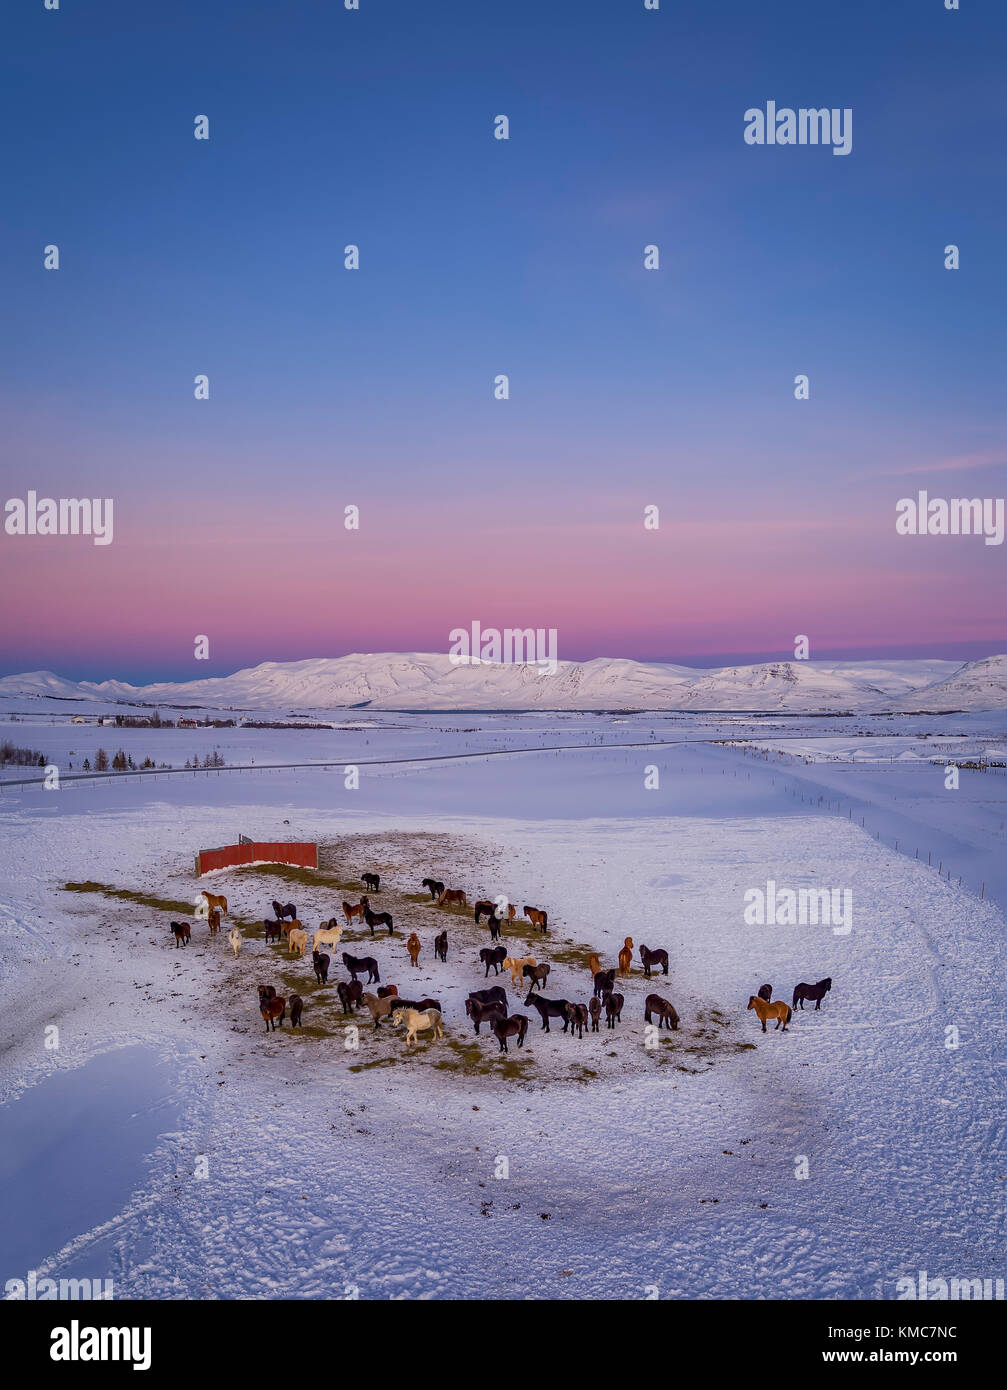 Icelandic on a farm in the Horgardulur valley in Northern Iceland. This image is shot with a drone. - Stock Image